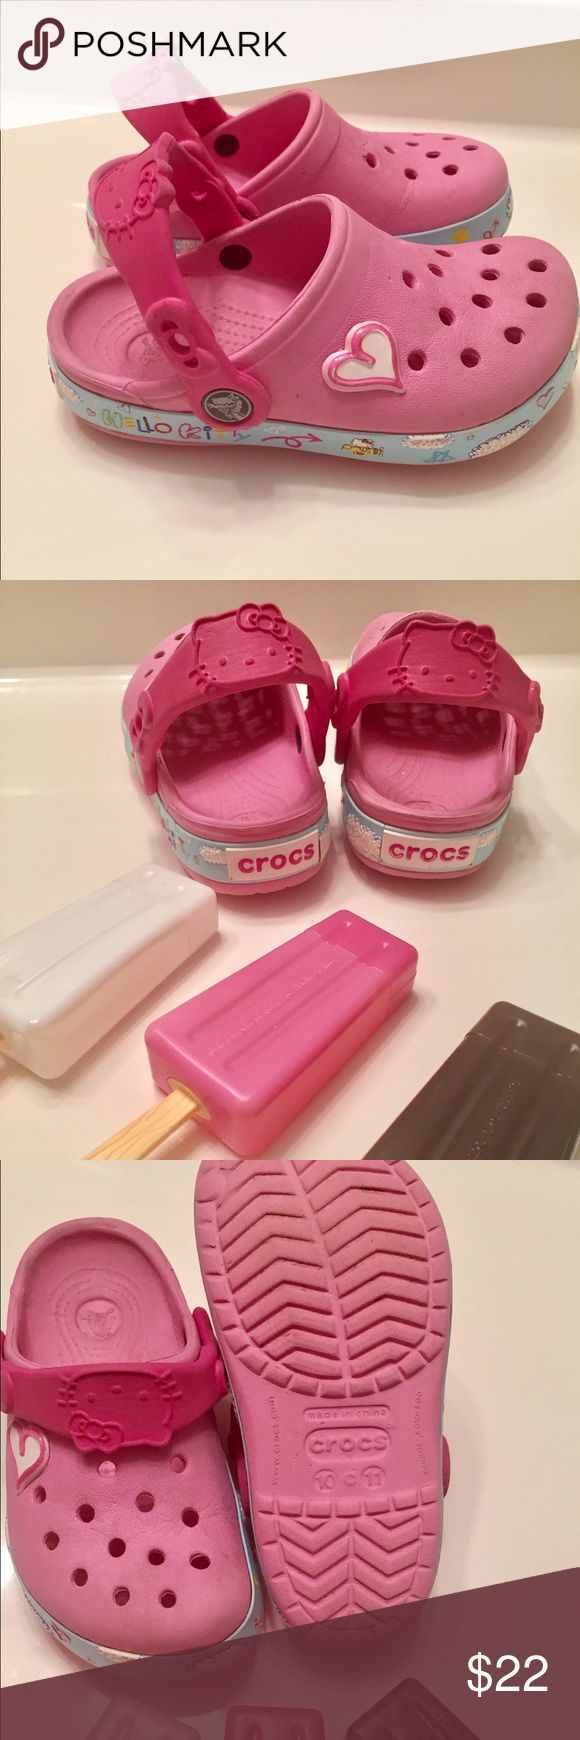 Crocs Hello Kitty (Pink) Hello Kitty Croc Shoes in a light pink and Blue with Hello Kitty Writing Size 10-11 Toddler Gently Used in over all good condition. CROCS Shoes Water Shoes